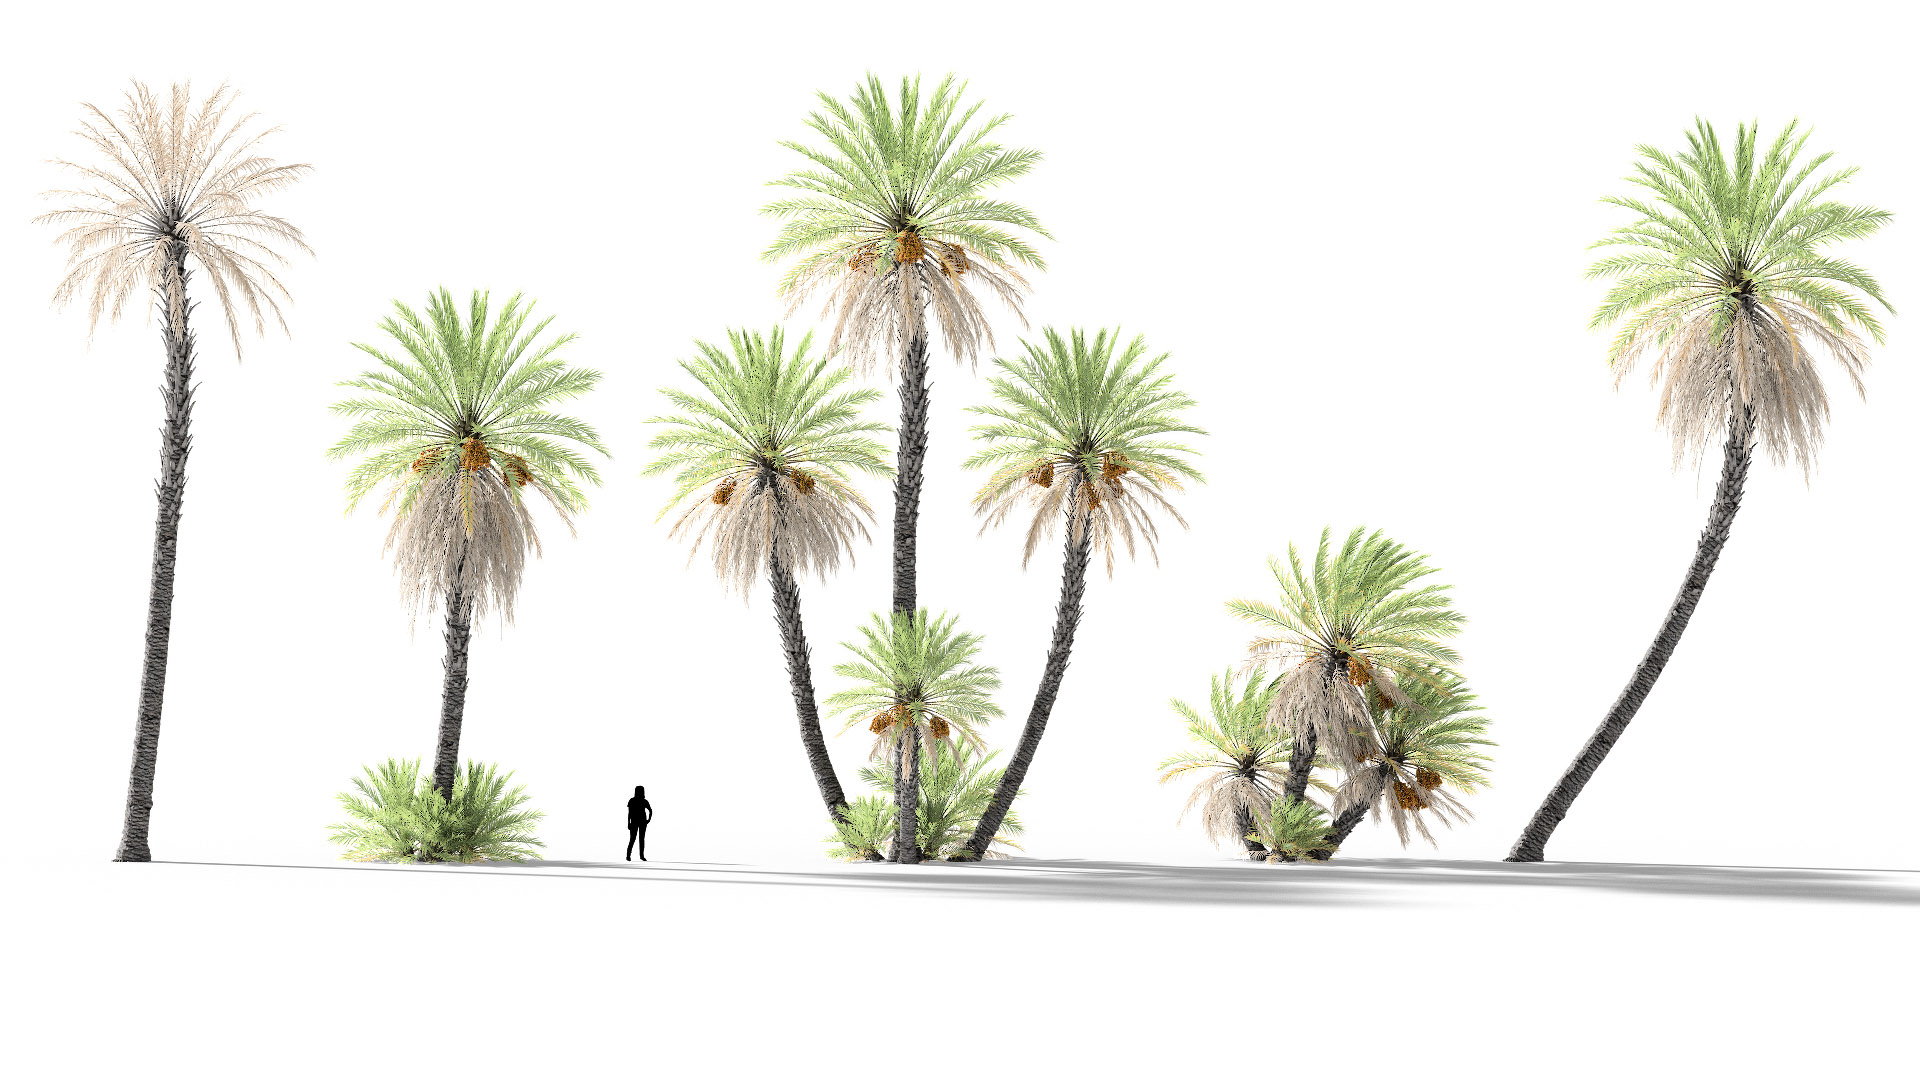 3D model of the Date palm Phoenix dactylifera different presets